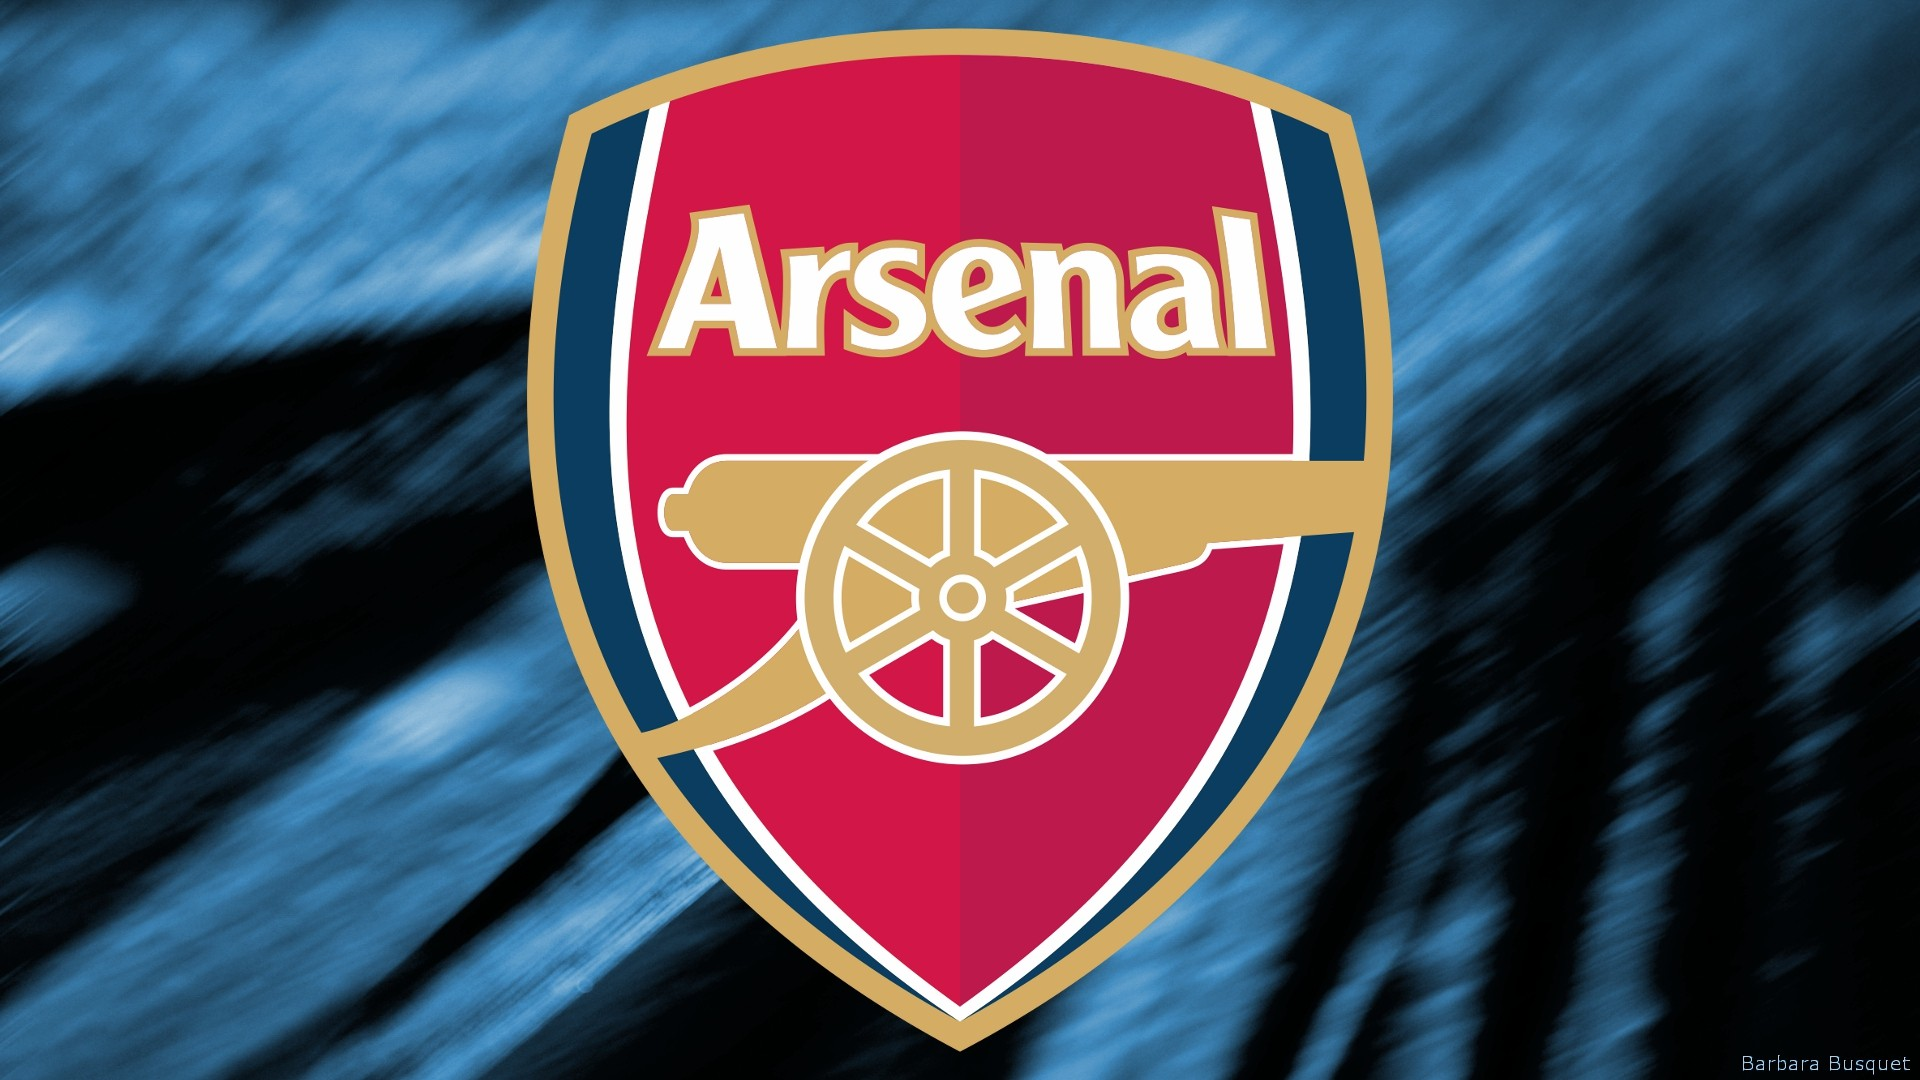 Pin arsenal london logo wallpaper from hd football for Arsenal mural wallpaper